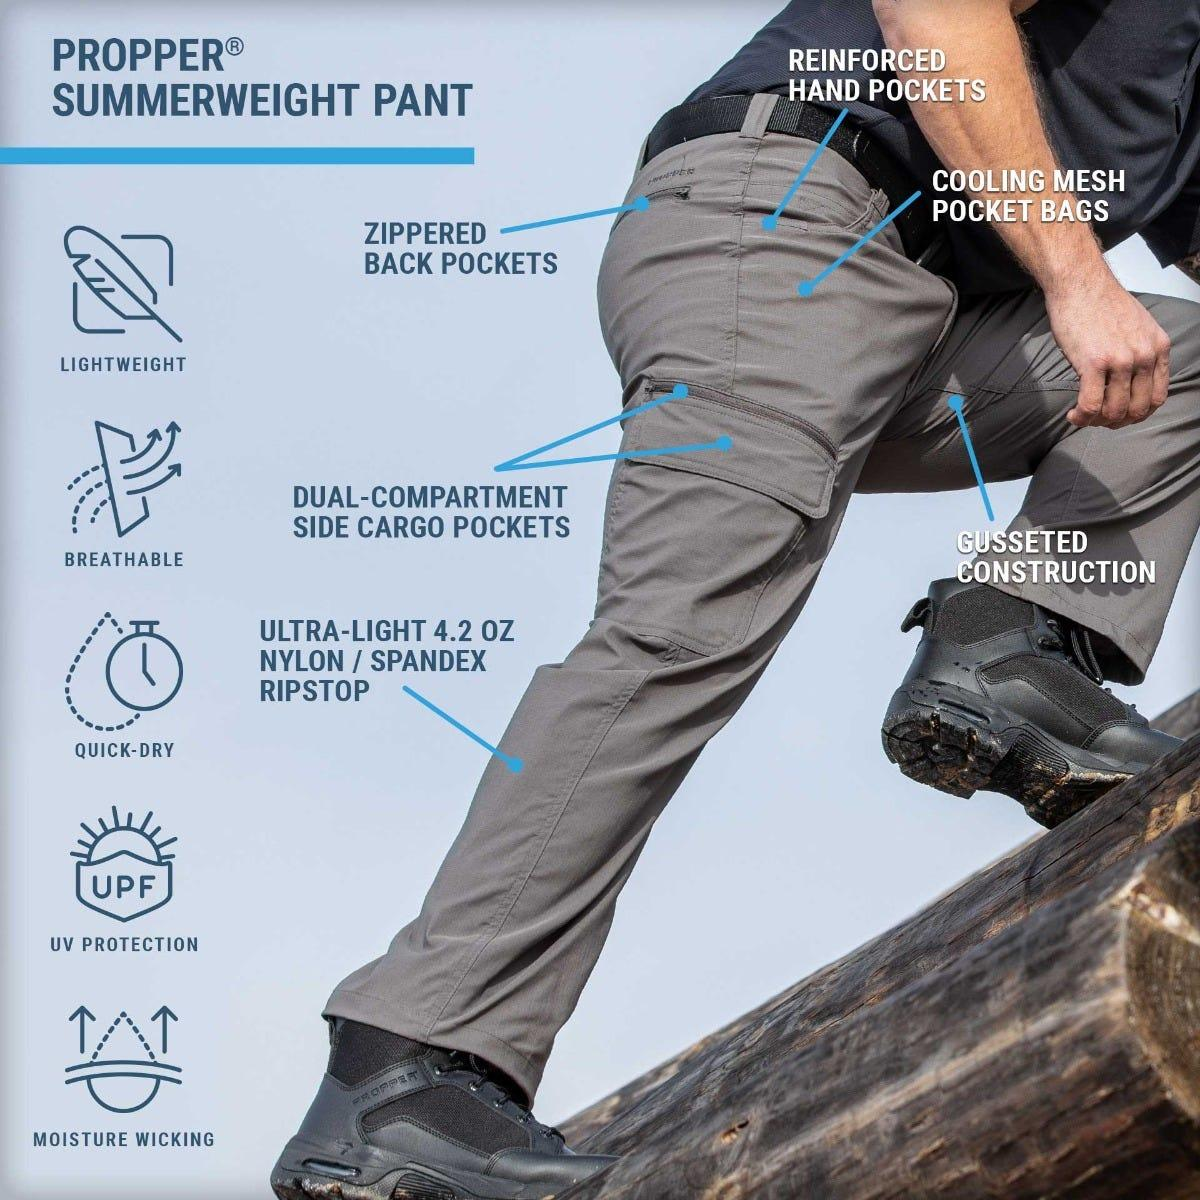 Propper Summerweight Pants feature ultra-light stretch fabric with UV protection, cool pockets and dry quickly for breathable performance.